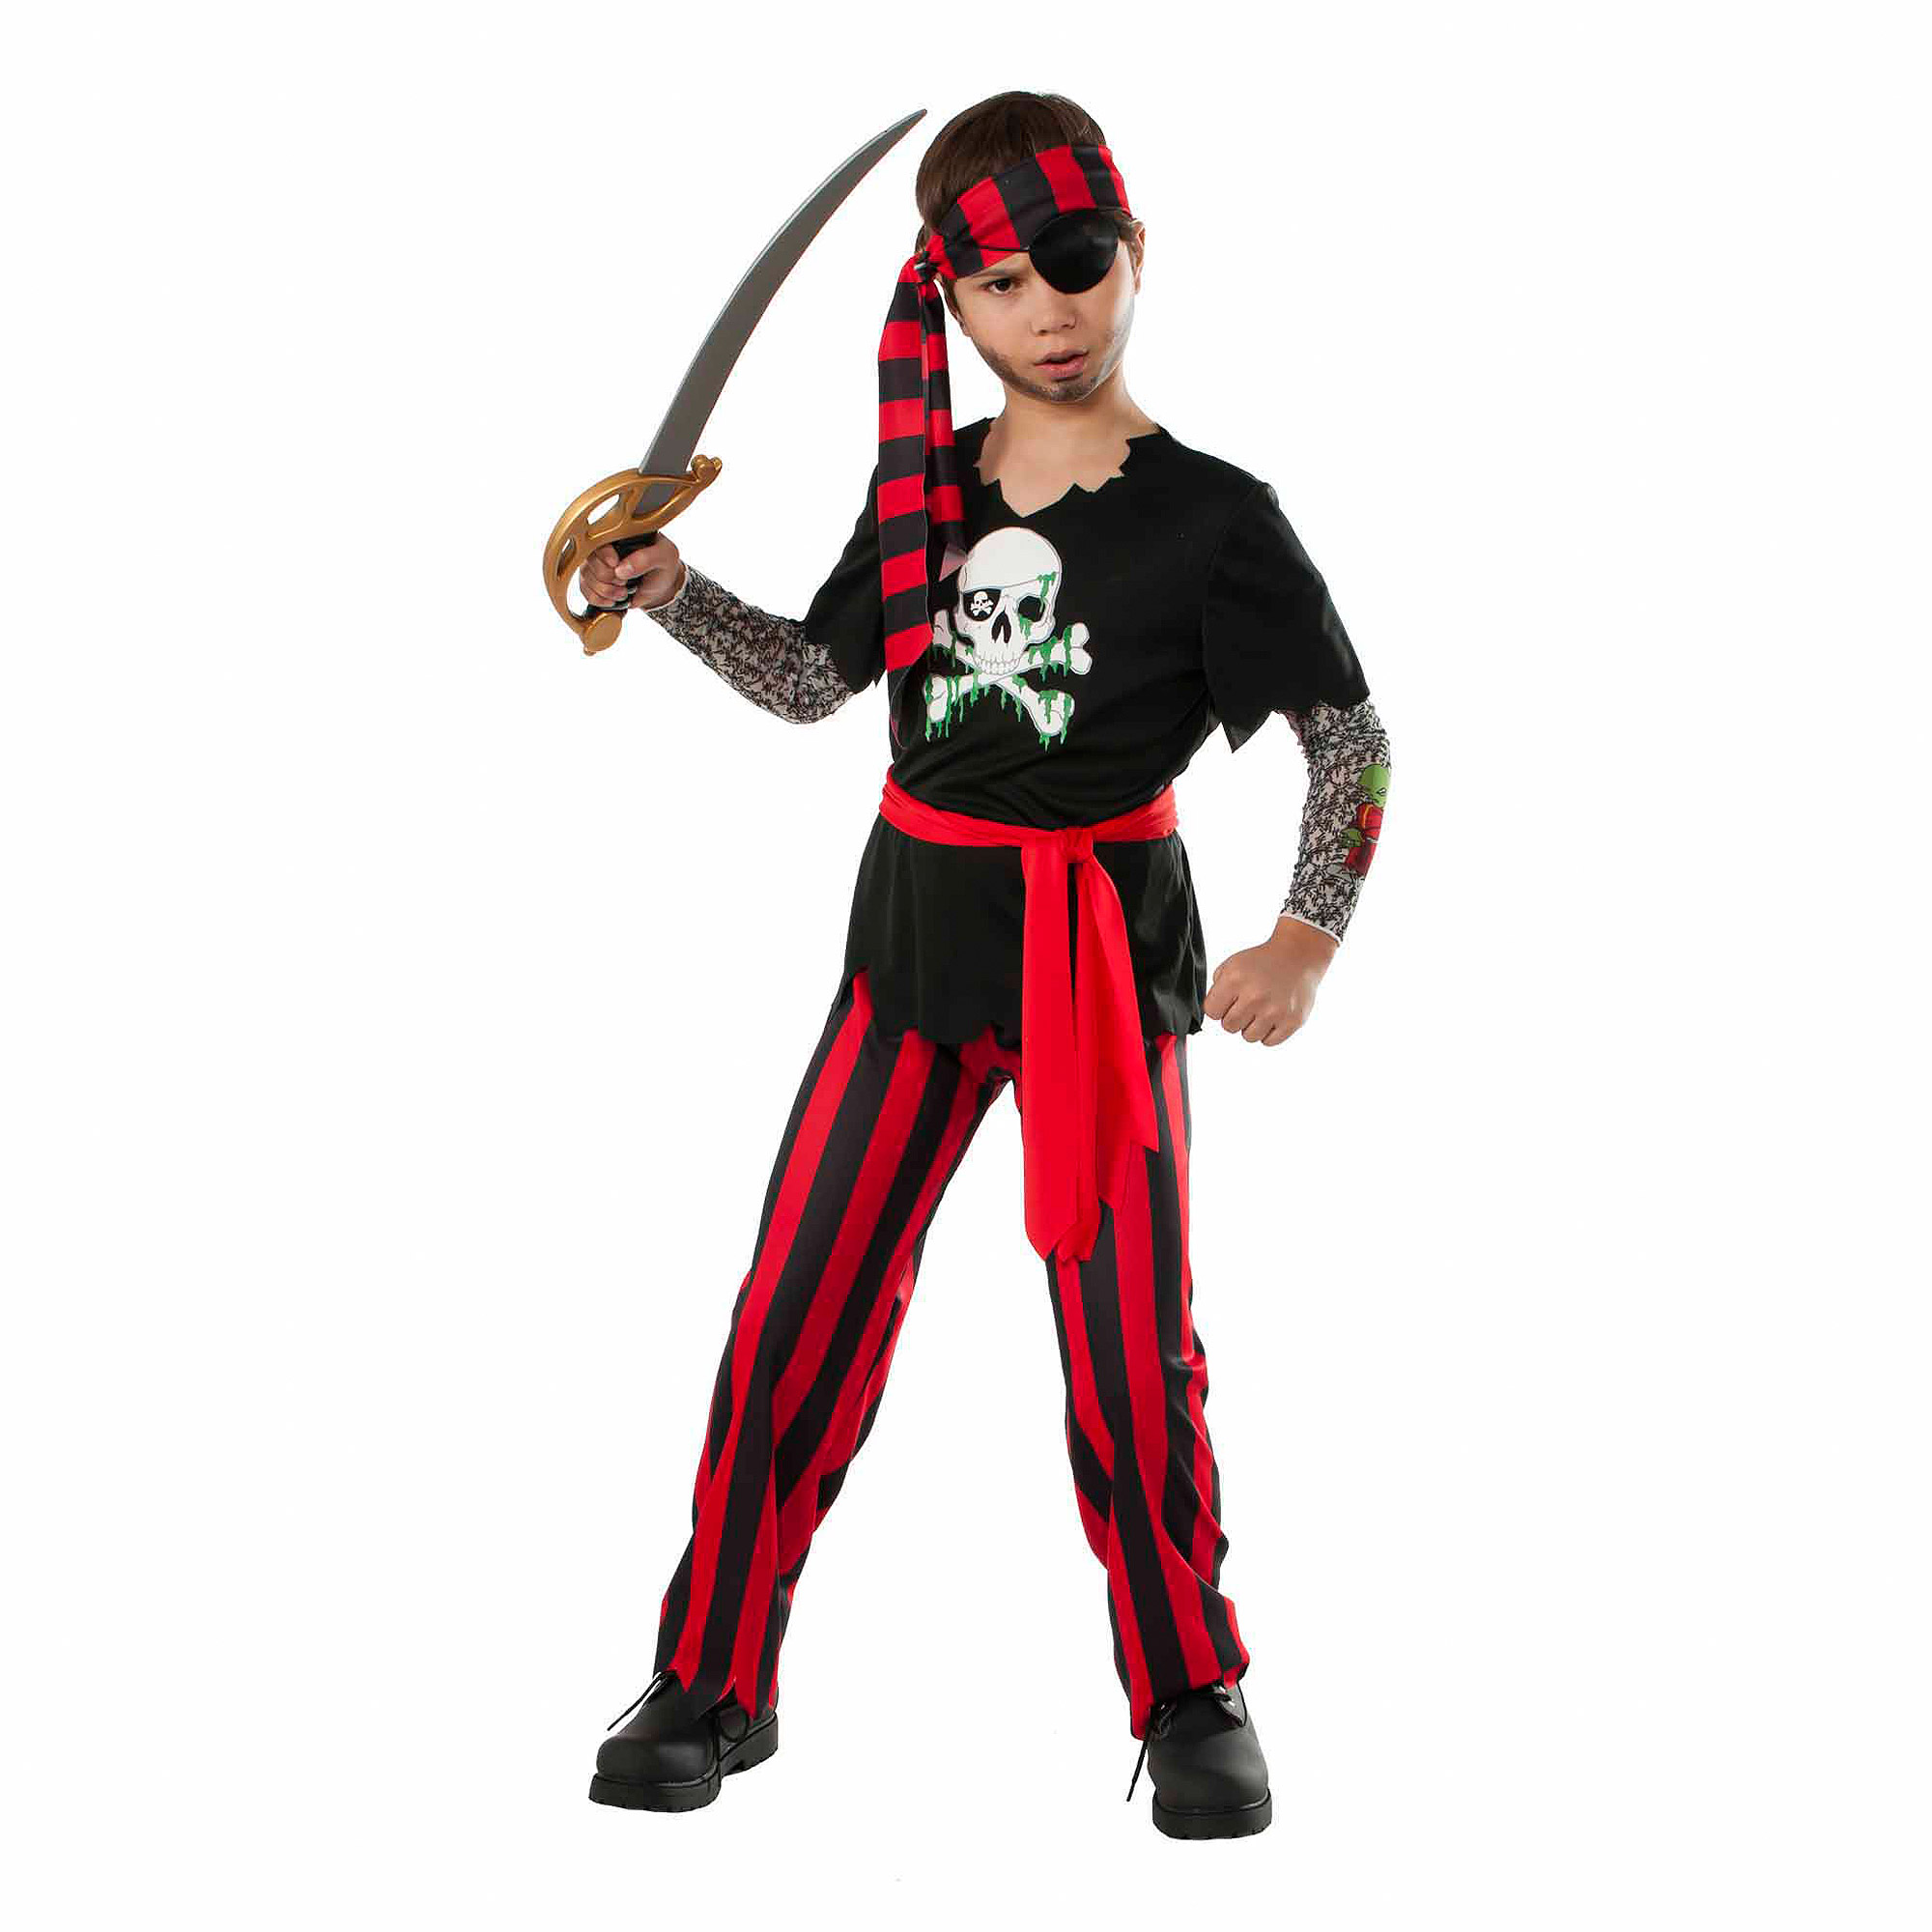 Tattooed Pirate Boy Halloween Costume by Rubie's Costume Company